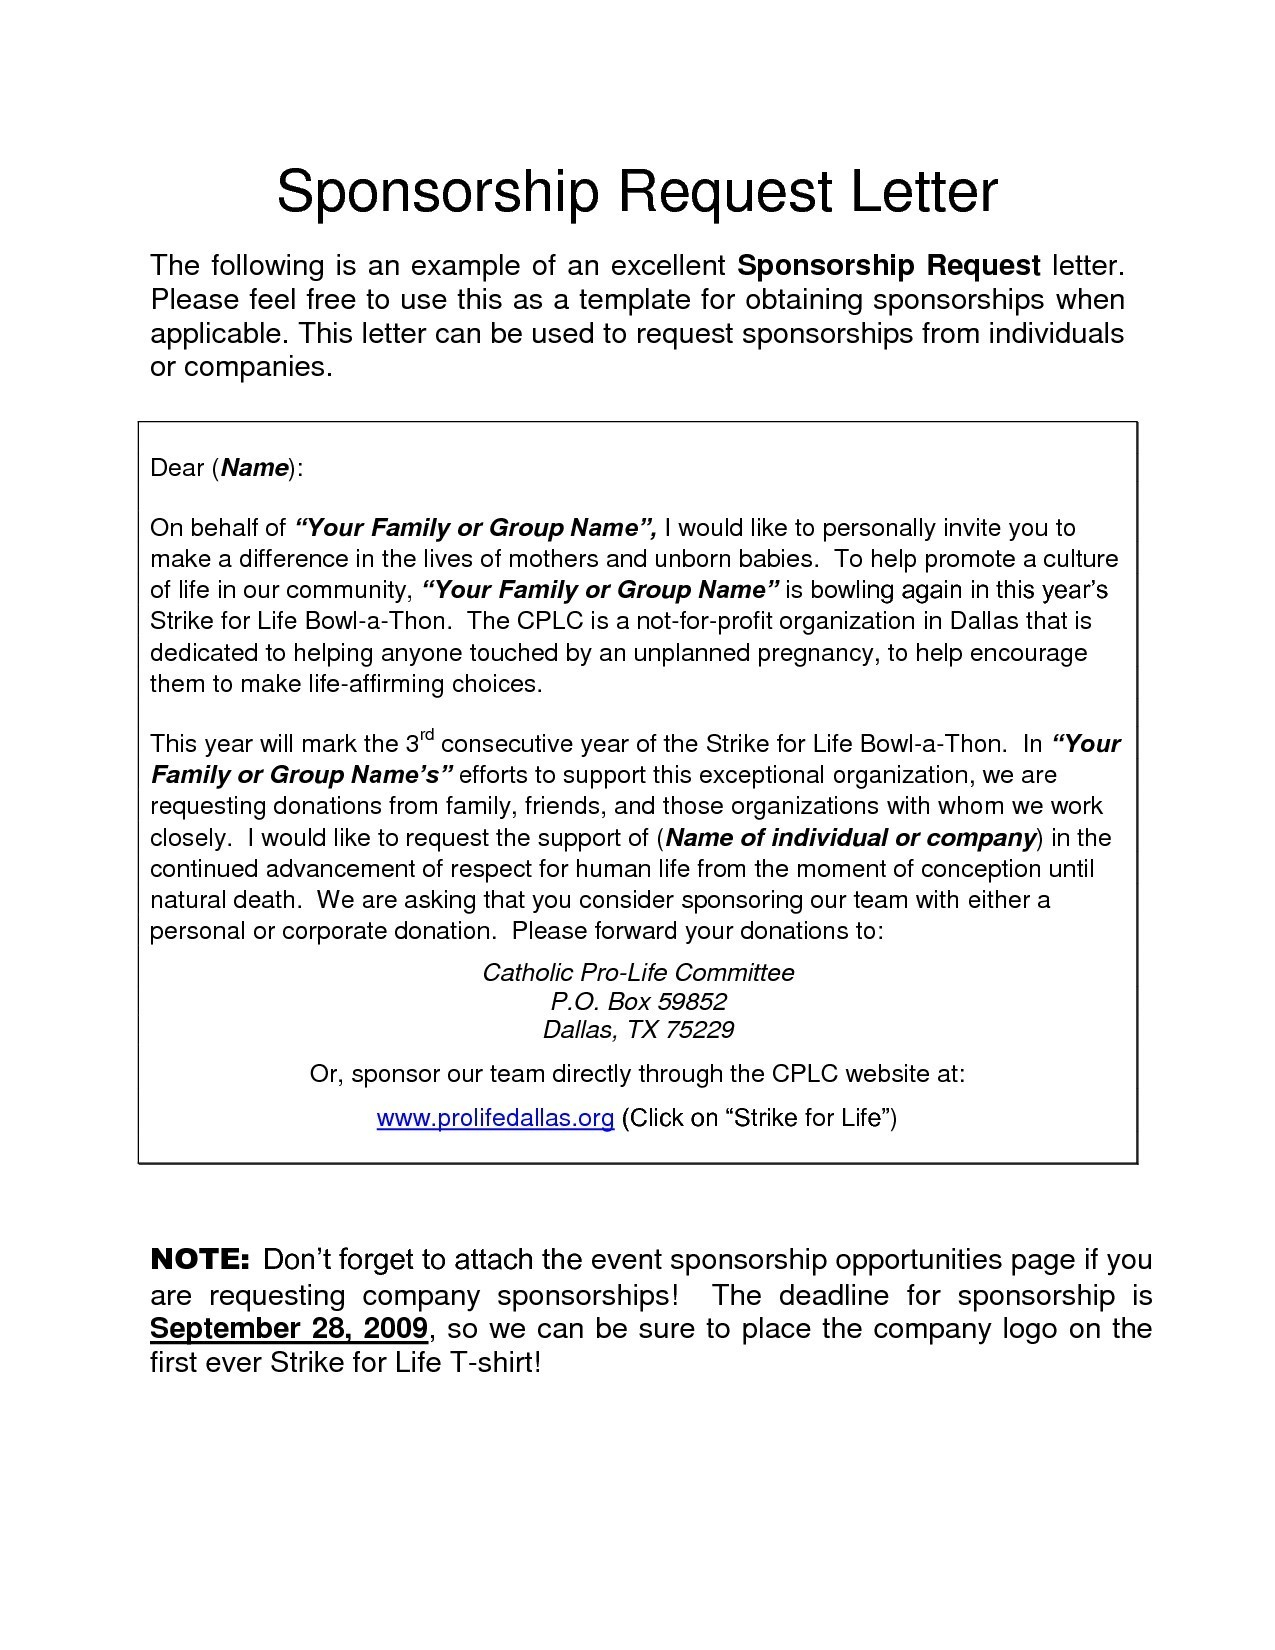 Demand Letter Template Texas - Letter Template Archives Save Sponsor Letters Fresh Request Sponsor